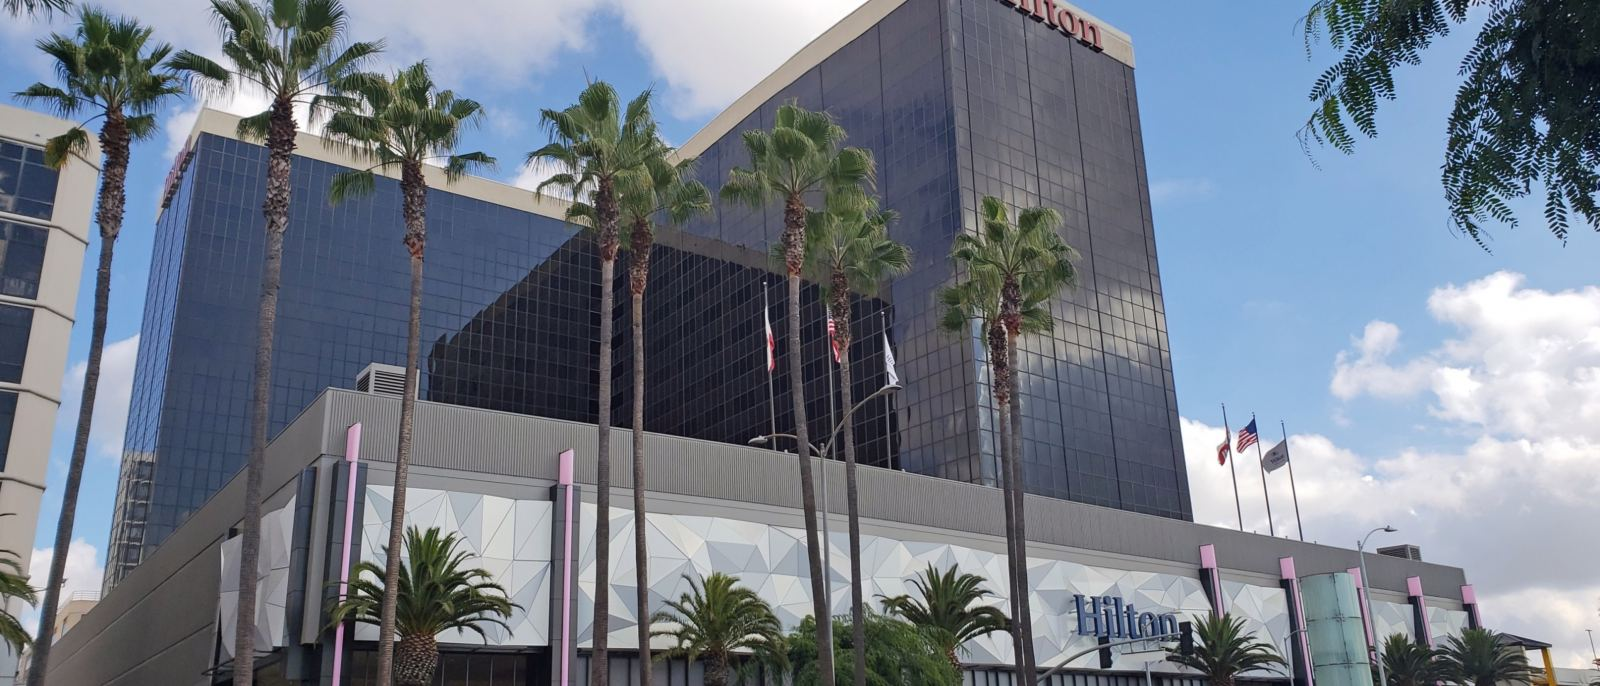 Hilton-Los-Angeles-Airport